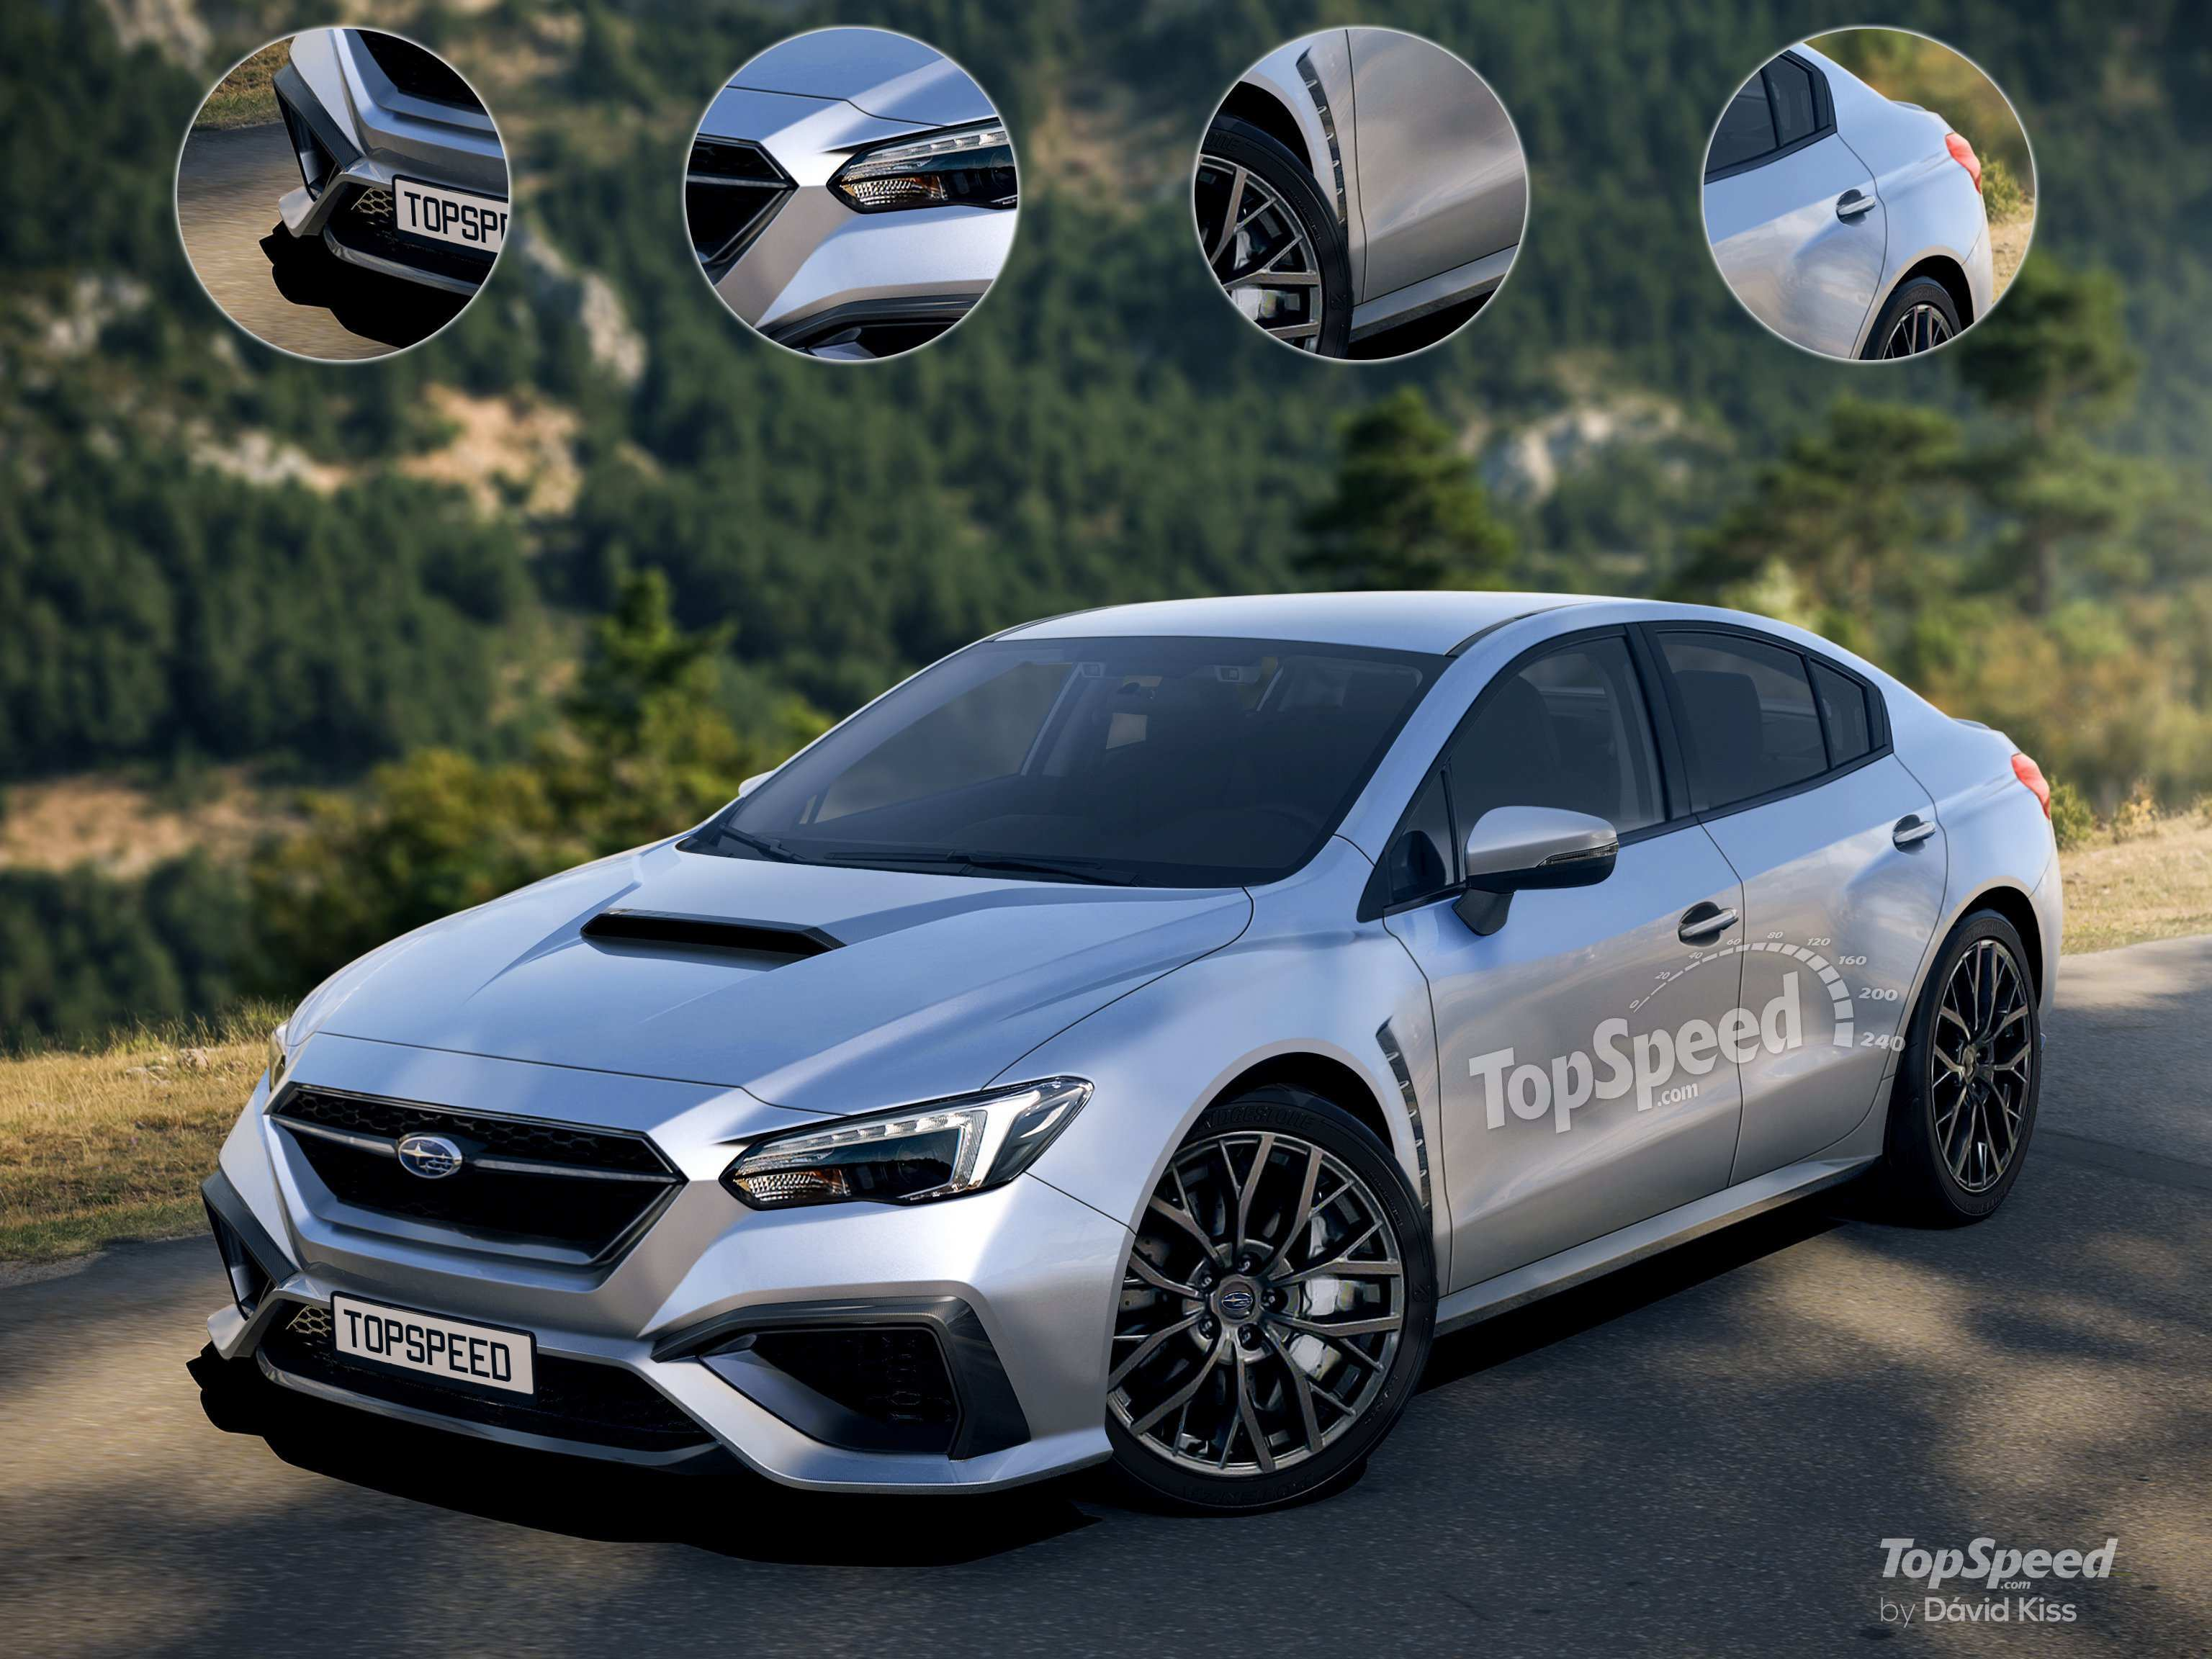 43 Gallery of Subaru Plans For 2019 Concept Redesign And Review Engine with Subaru Plans For 2019 Concept Redesign And Review